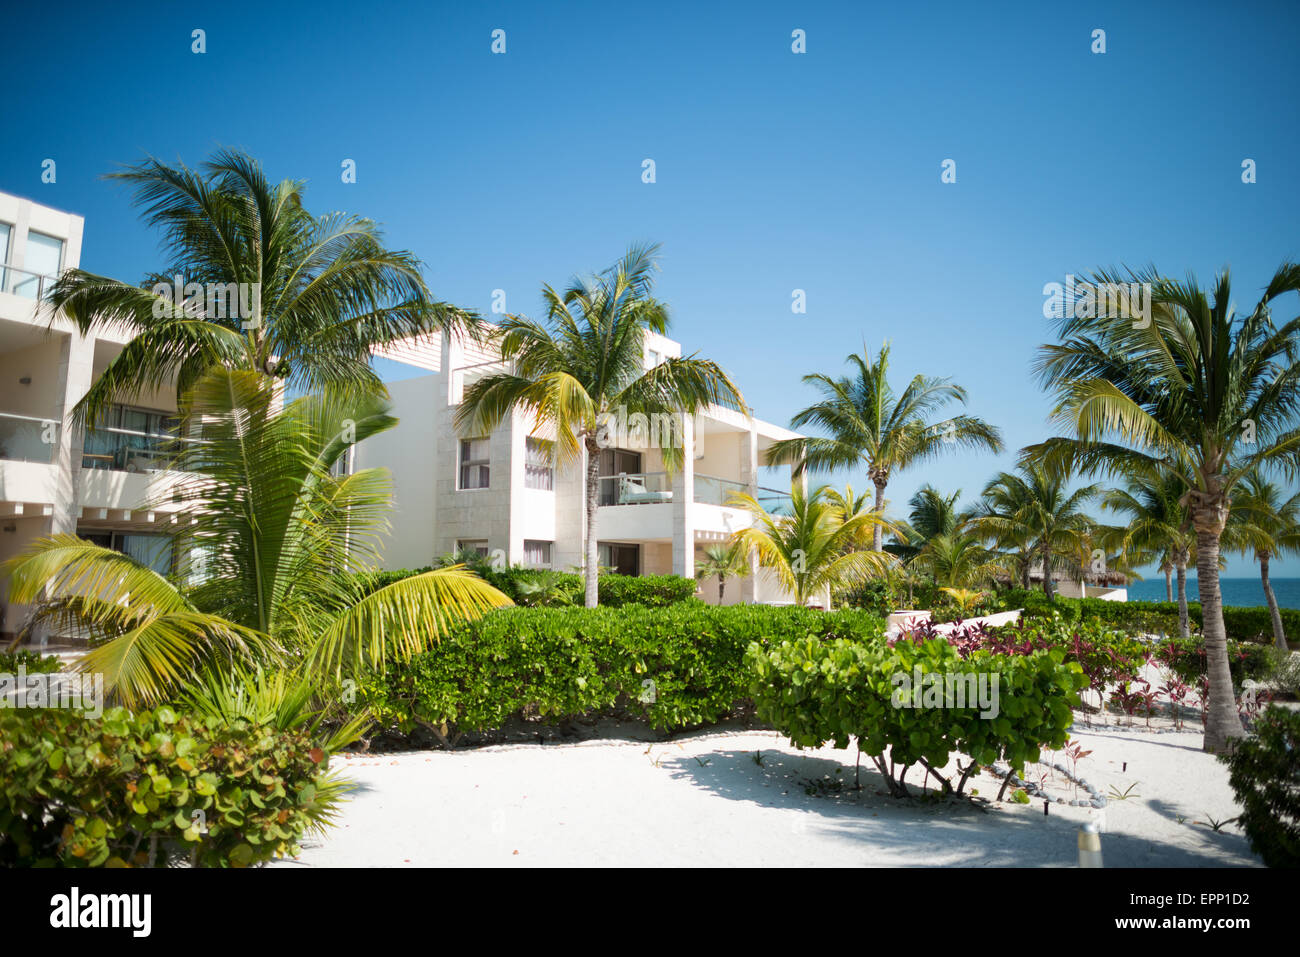 The Beloved Hotel, Playa Mujeres, Mexico, is located just north of Cancun. It's a luxury all-inclusive beach - Stock Image